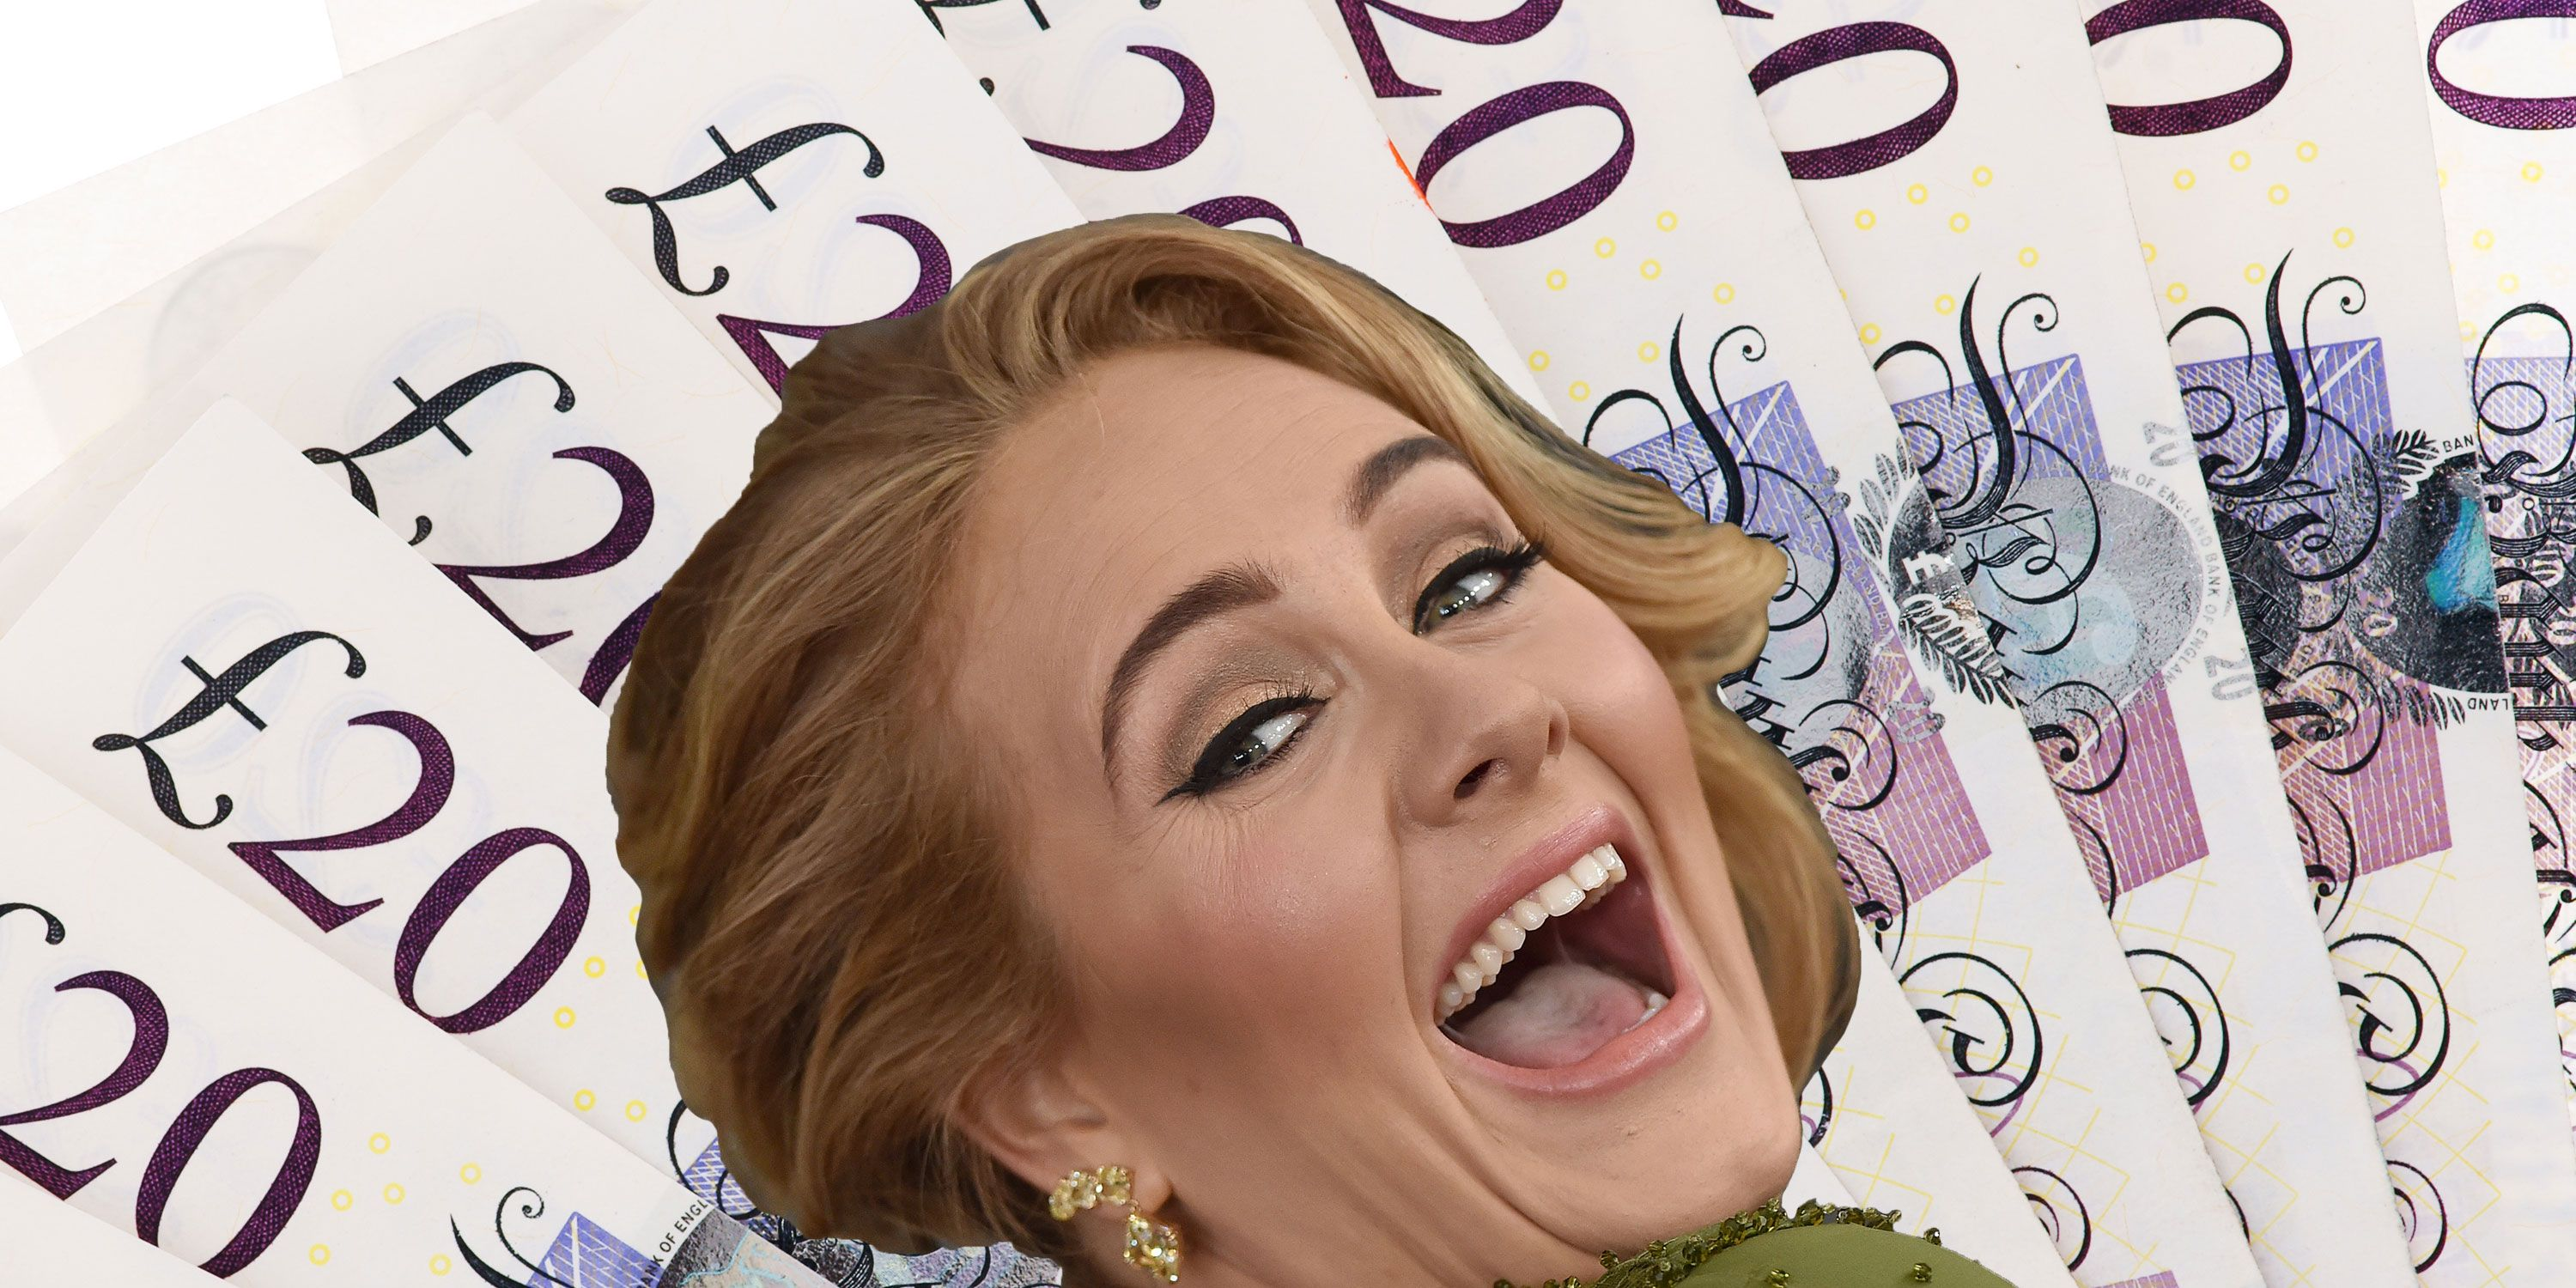 Adele laughing, GBP, cash, money